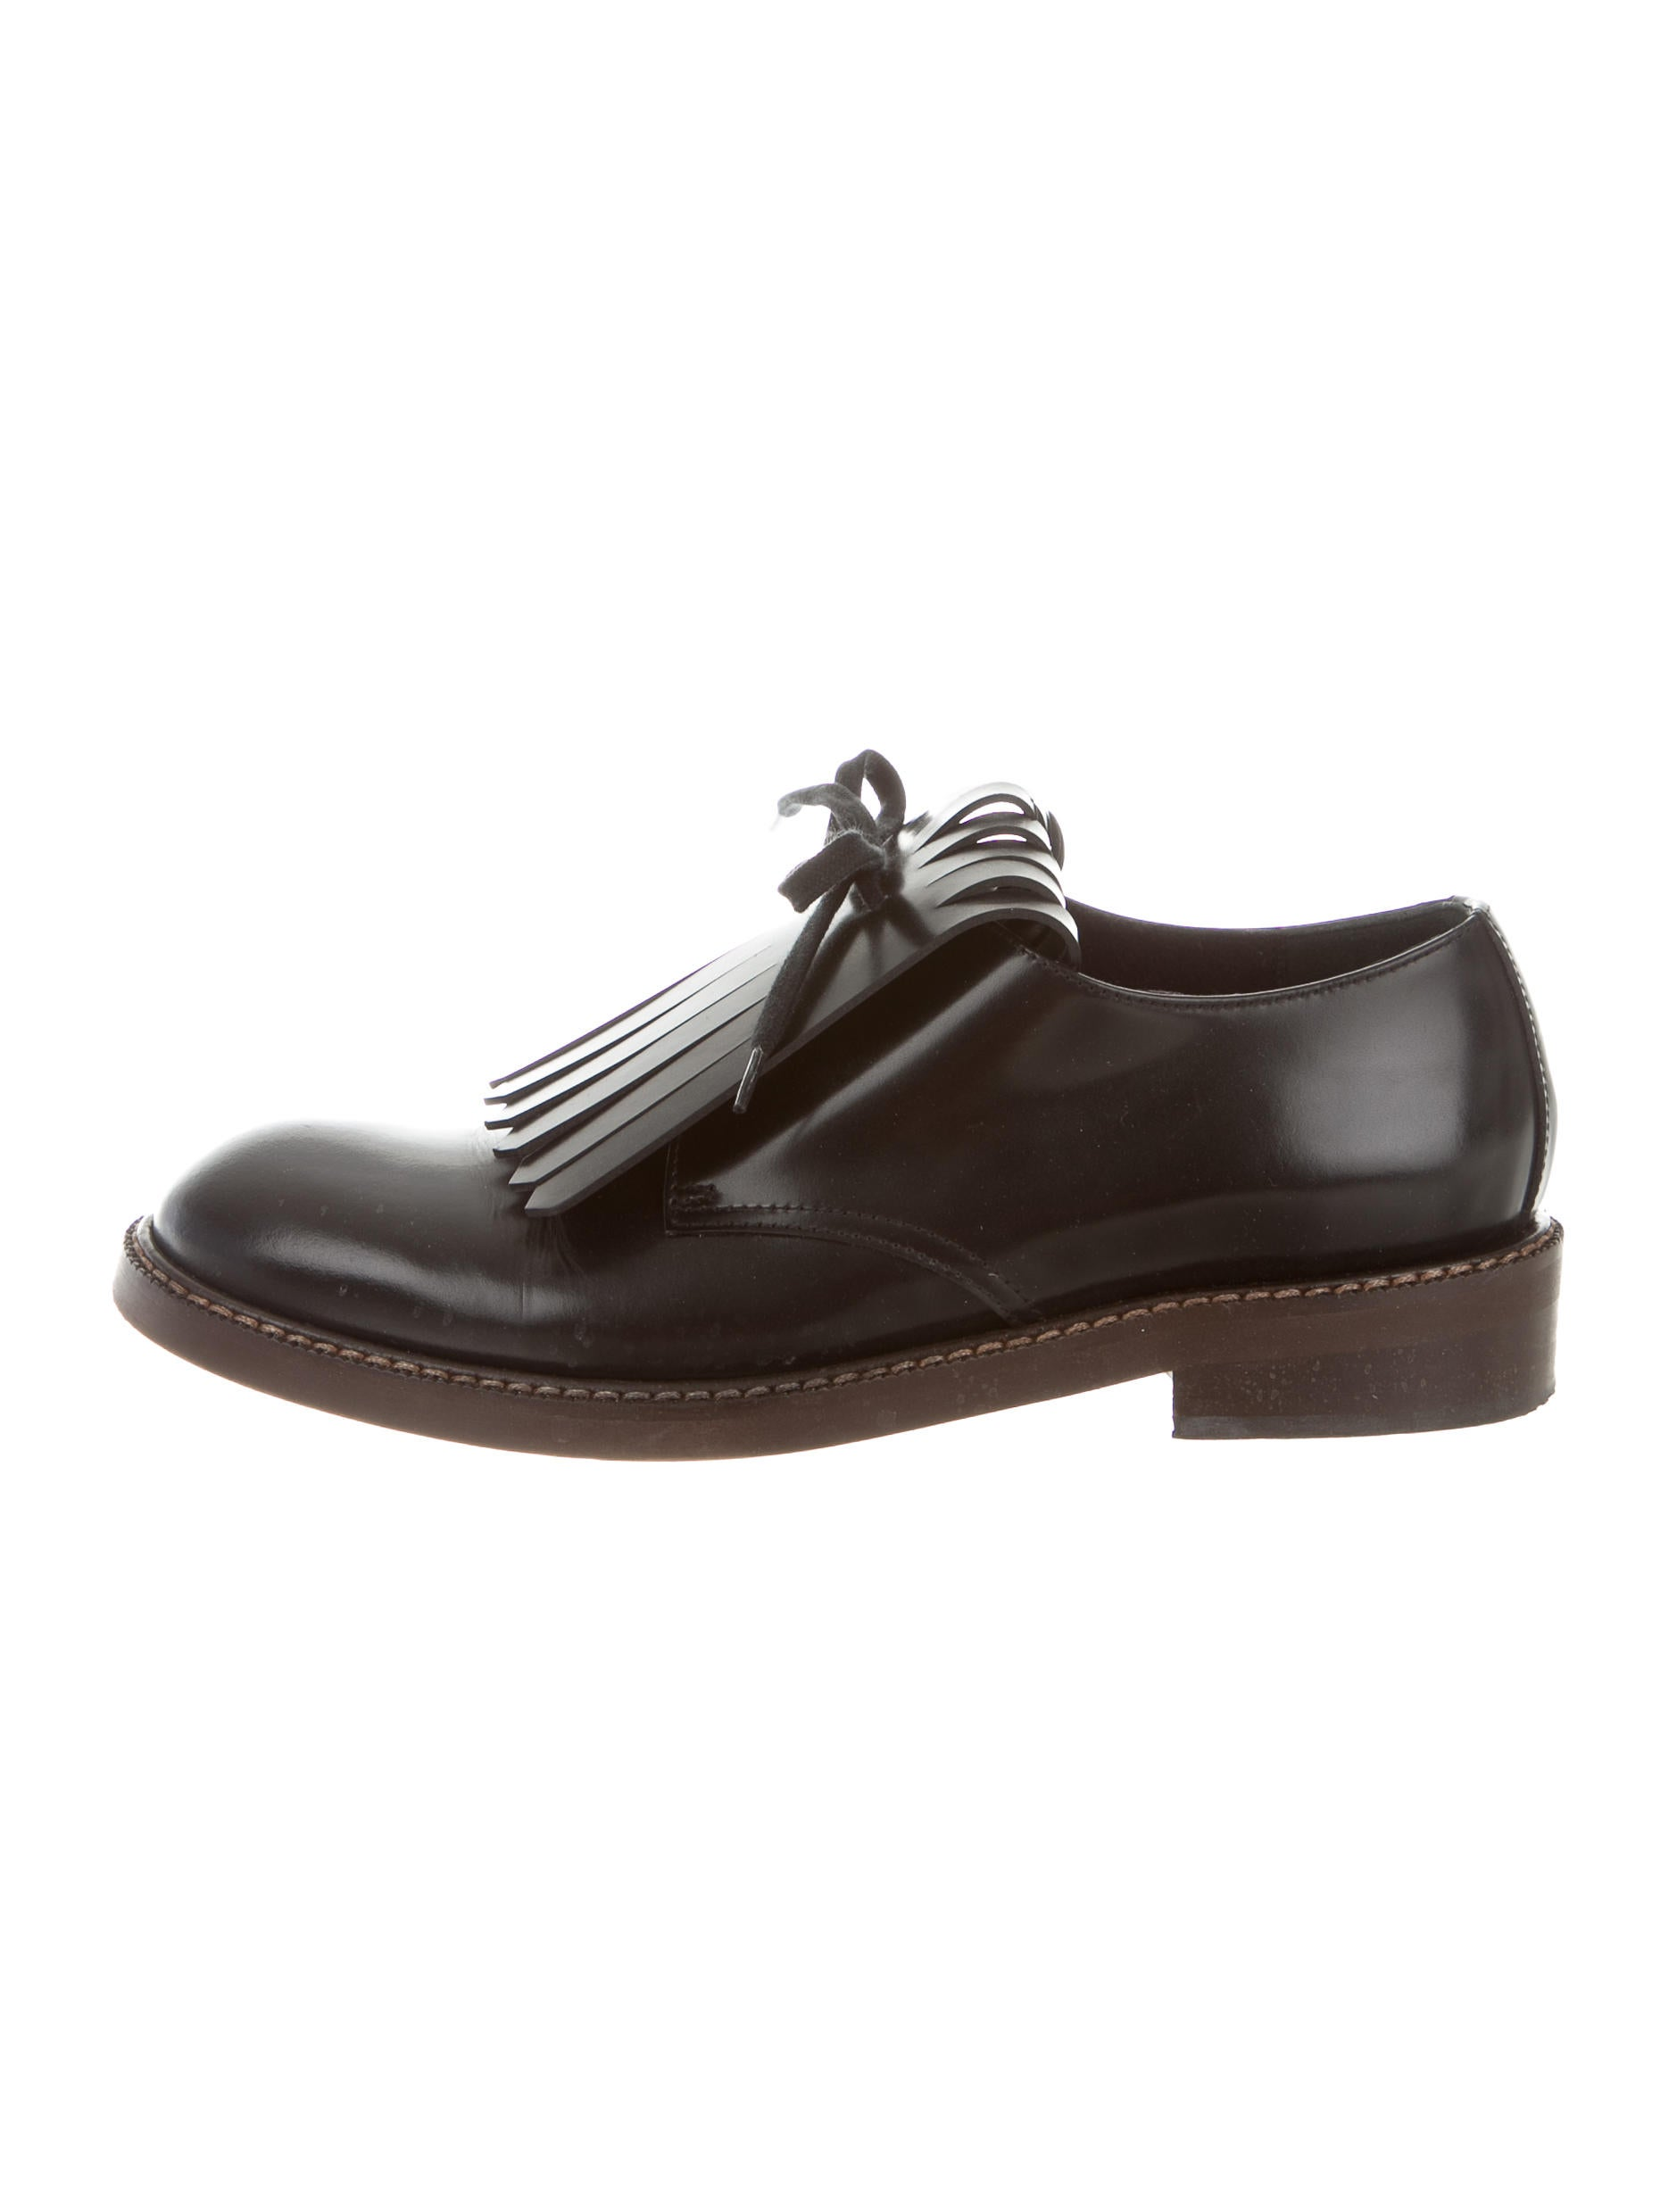 Marni Leather Kiltie Oxfords clearance shop for with credit card sale for nice cheap choice discount supply Du9VBL7